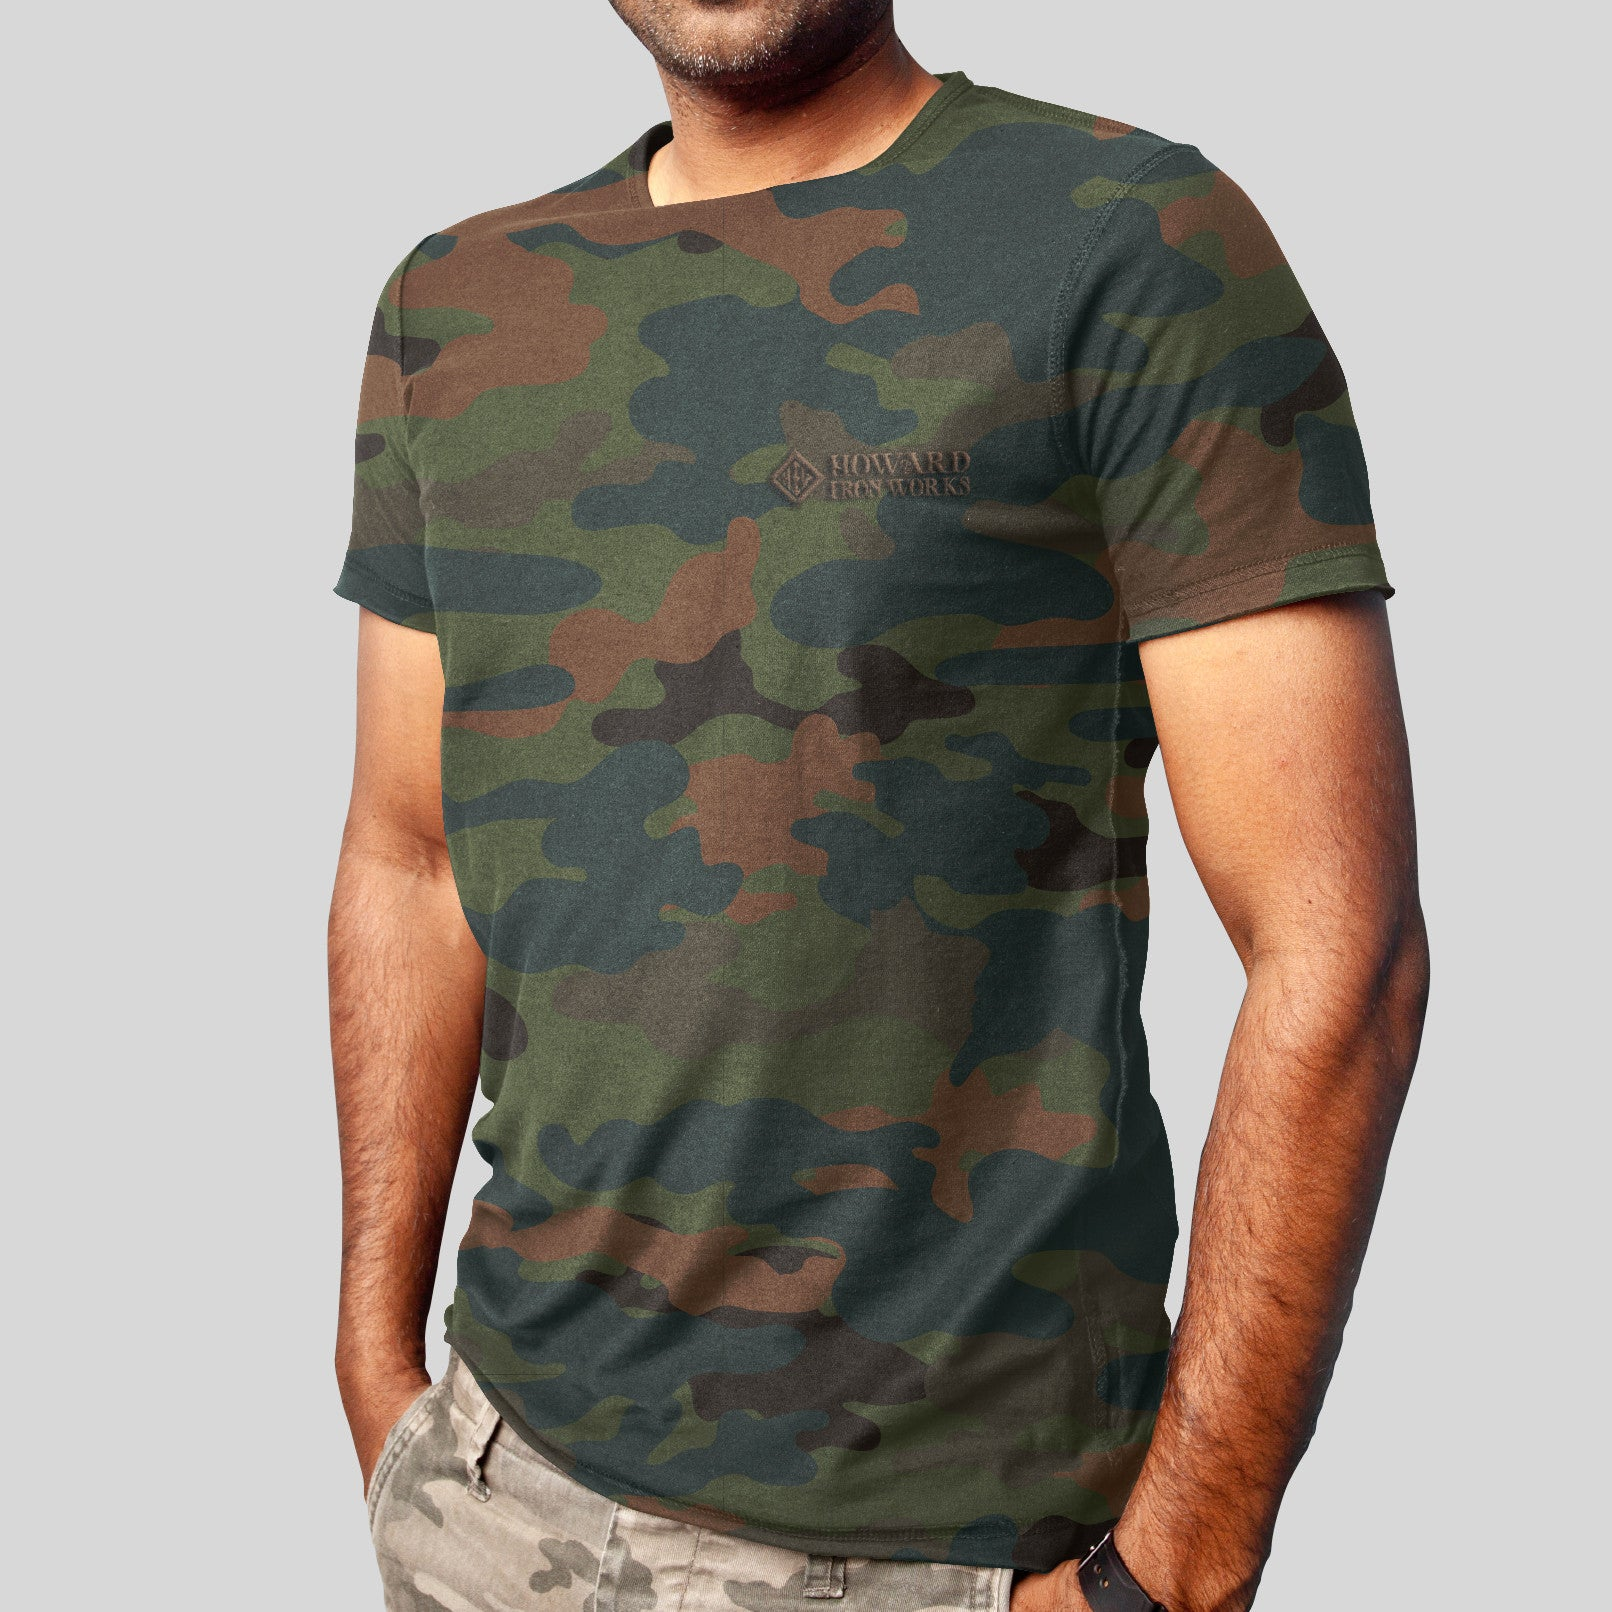 Men's T-Shirt, Short Sleeve, Green Camo - from Howard Iron Works Printing Museum